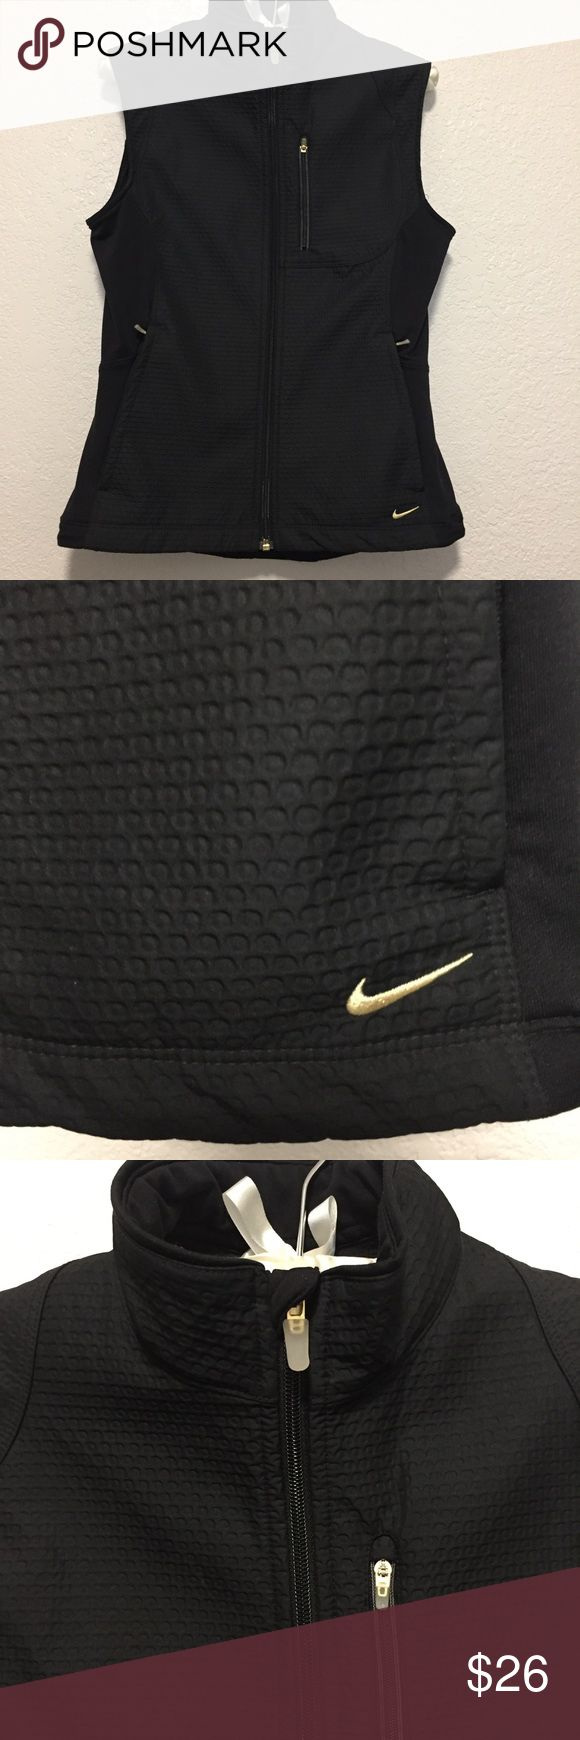 ✨▪️NIKE SPHERE PRO VEST▪️✨ Black and gold Nike vest in great condition. Thick durable material. This looks great over a thin sweatshirt or a T-shirt. It is true to size. Nike Jackets & Coats Vests